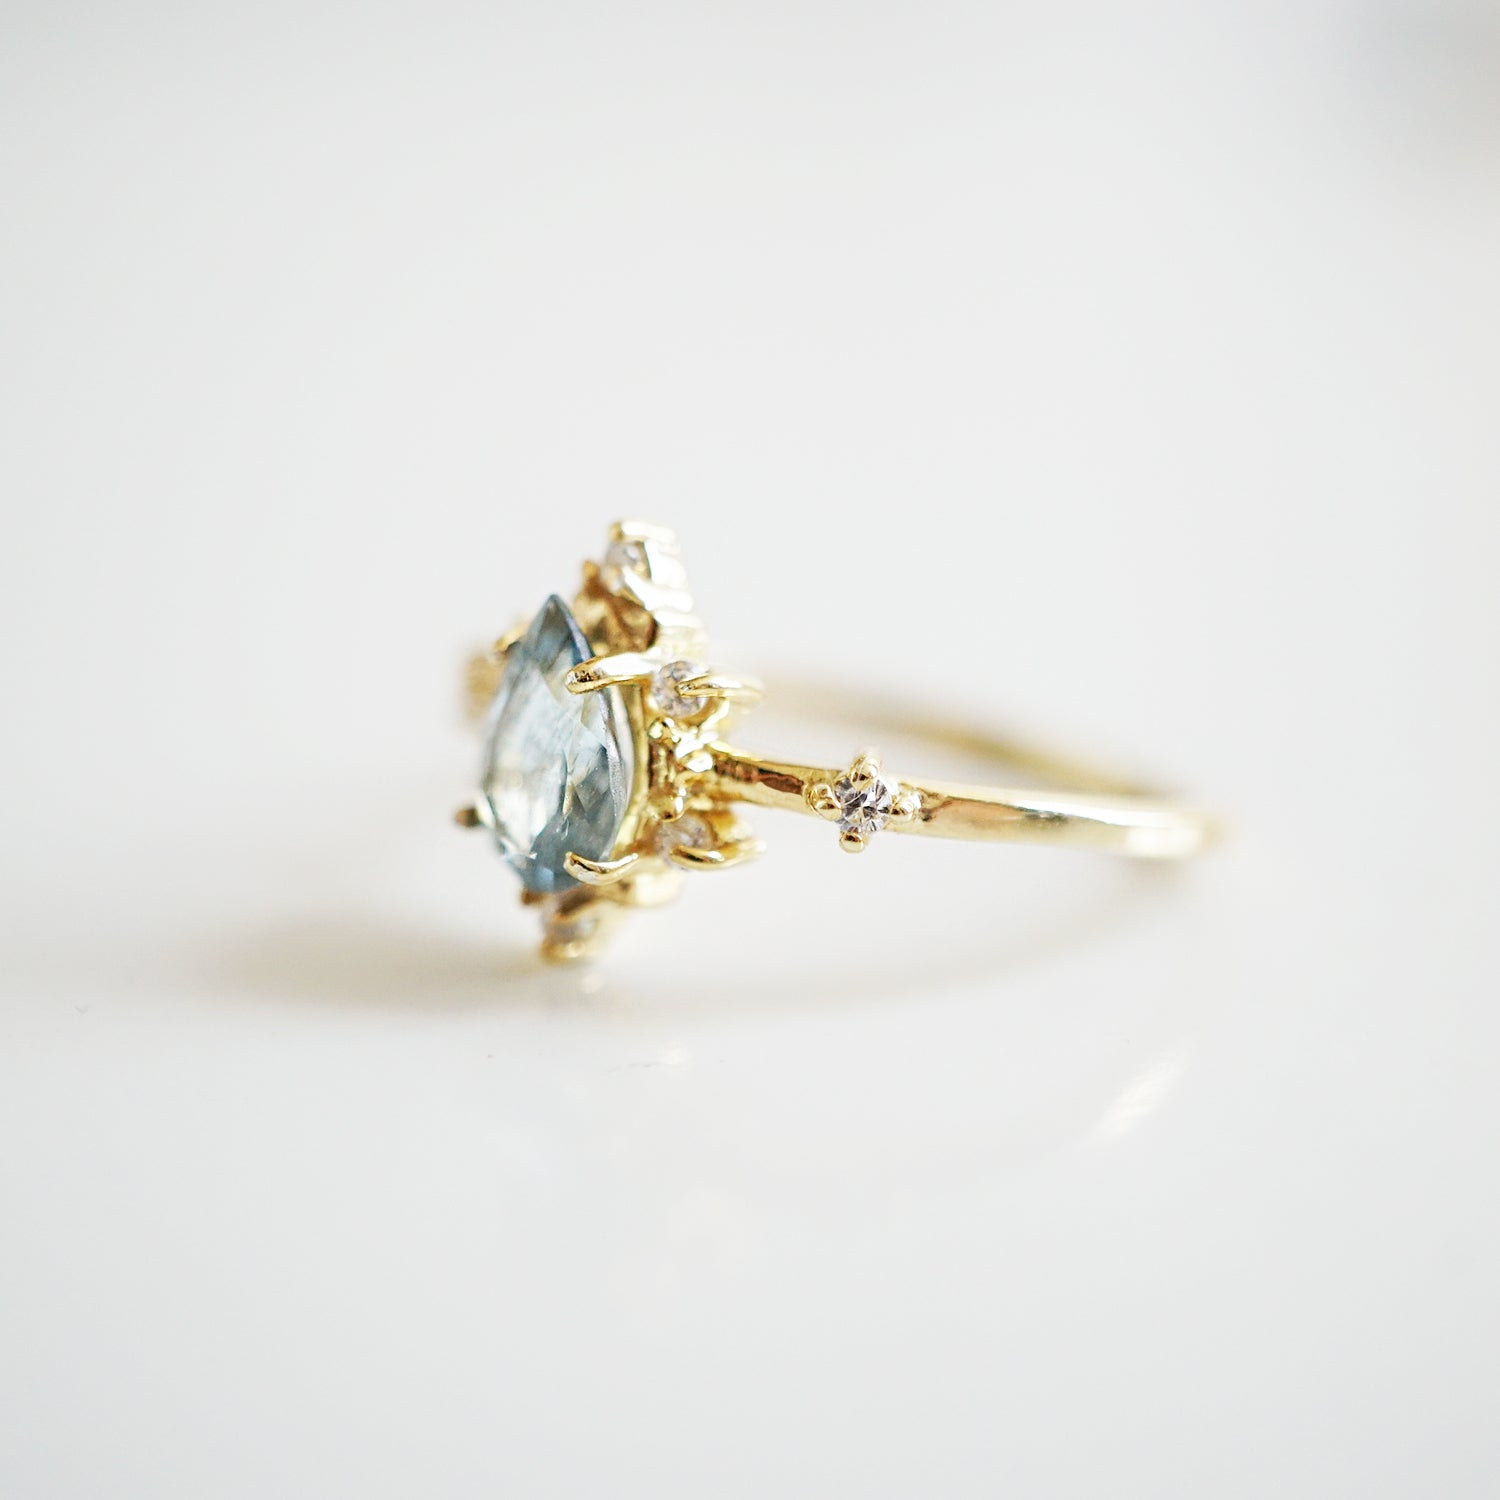 Aquamarine Crush Ring - Tippy Taste Jewelry